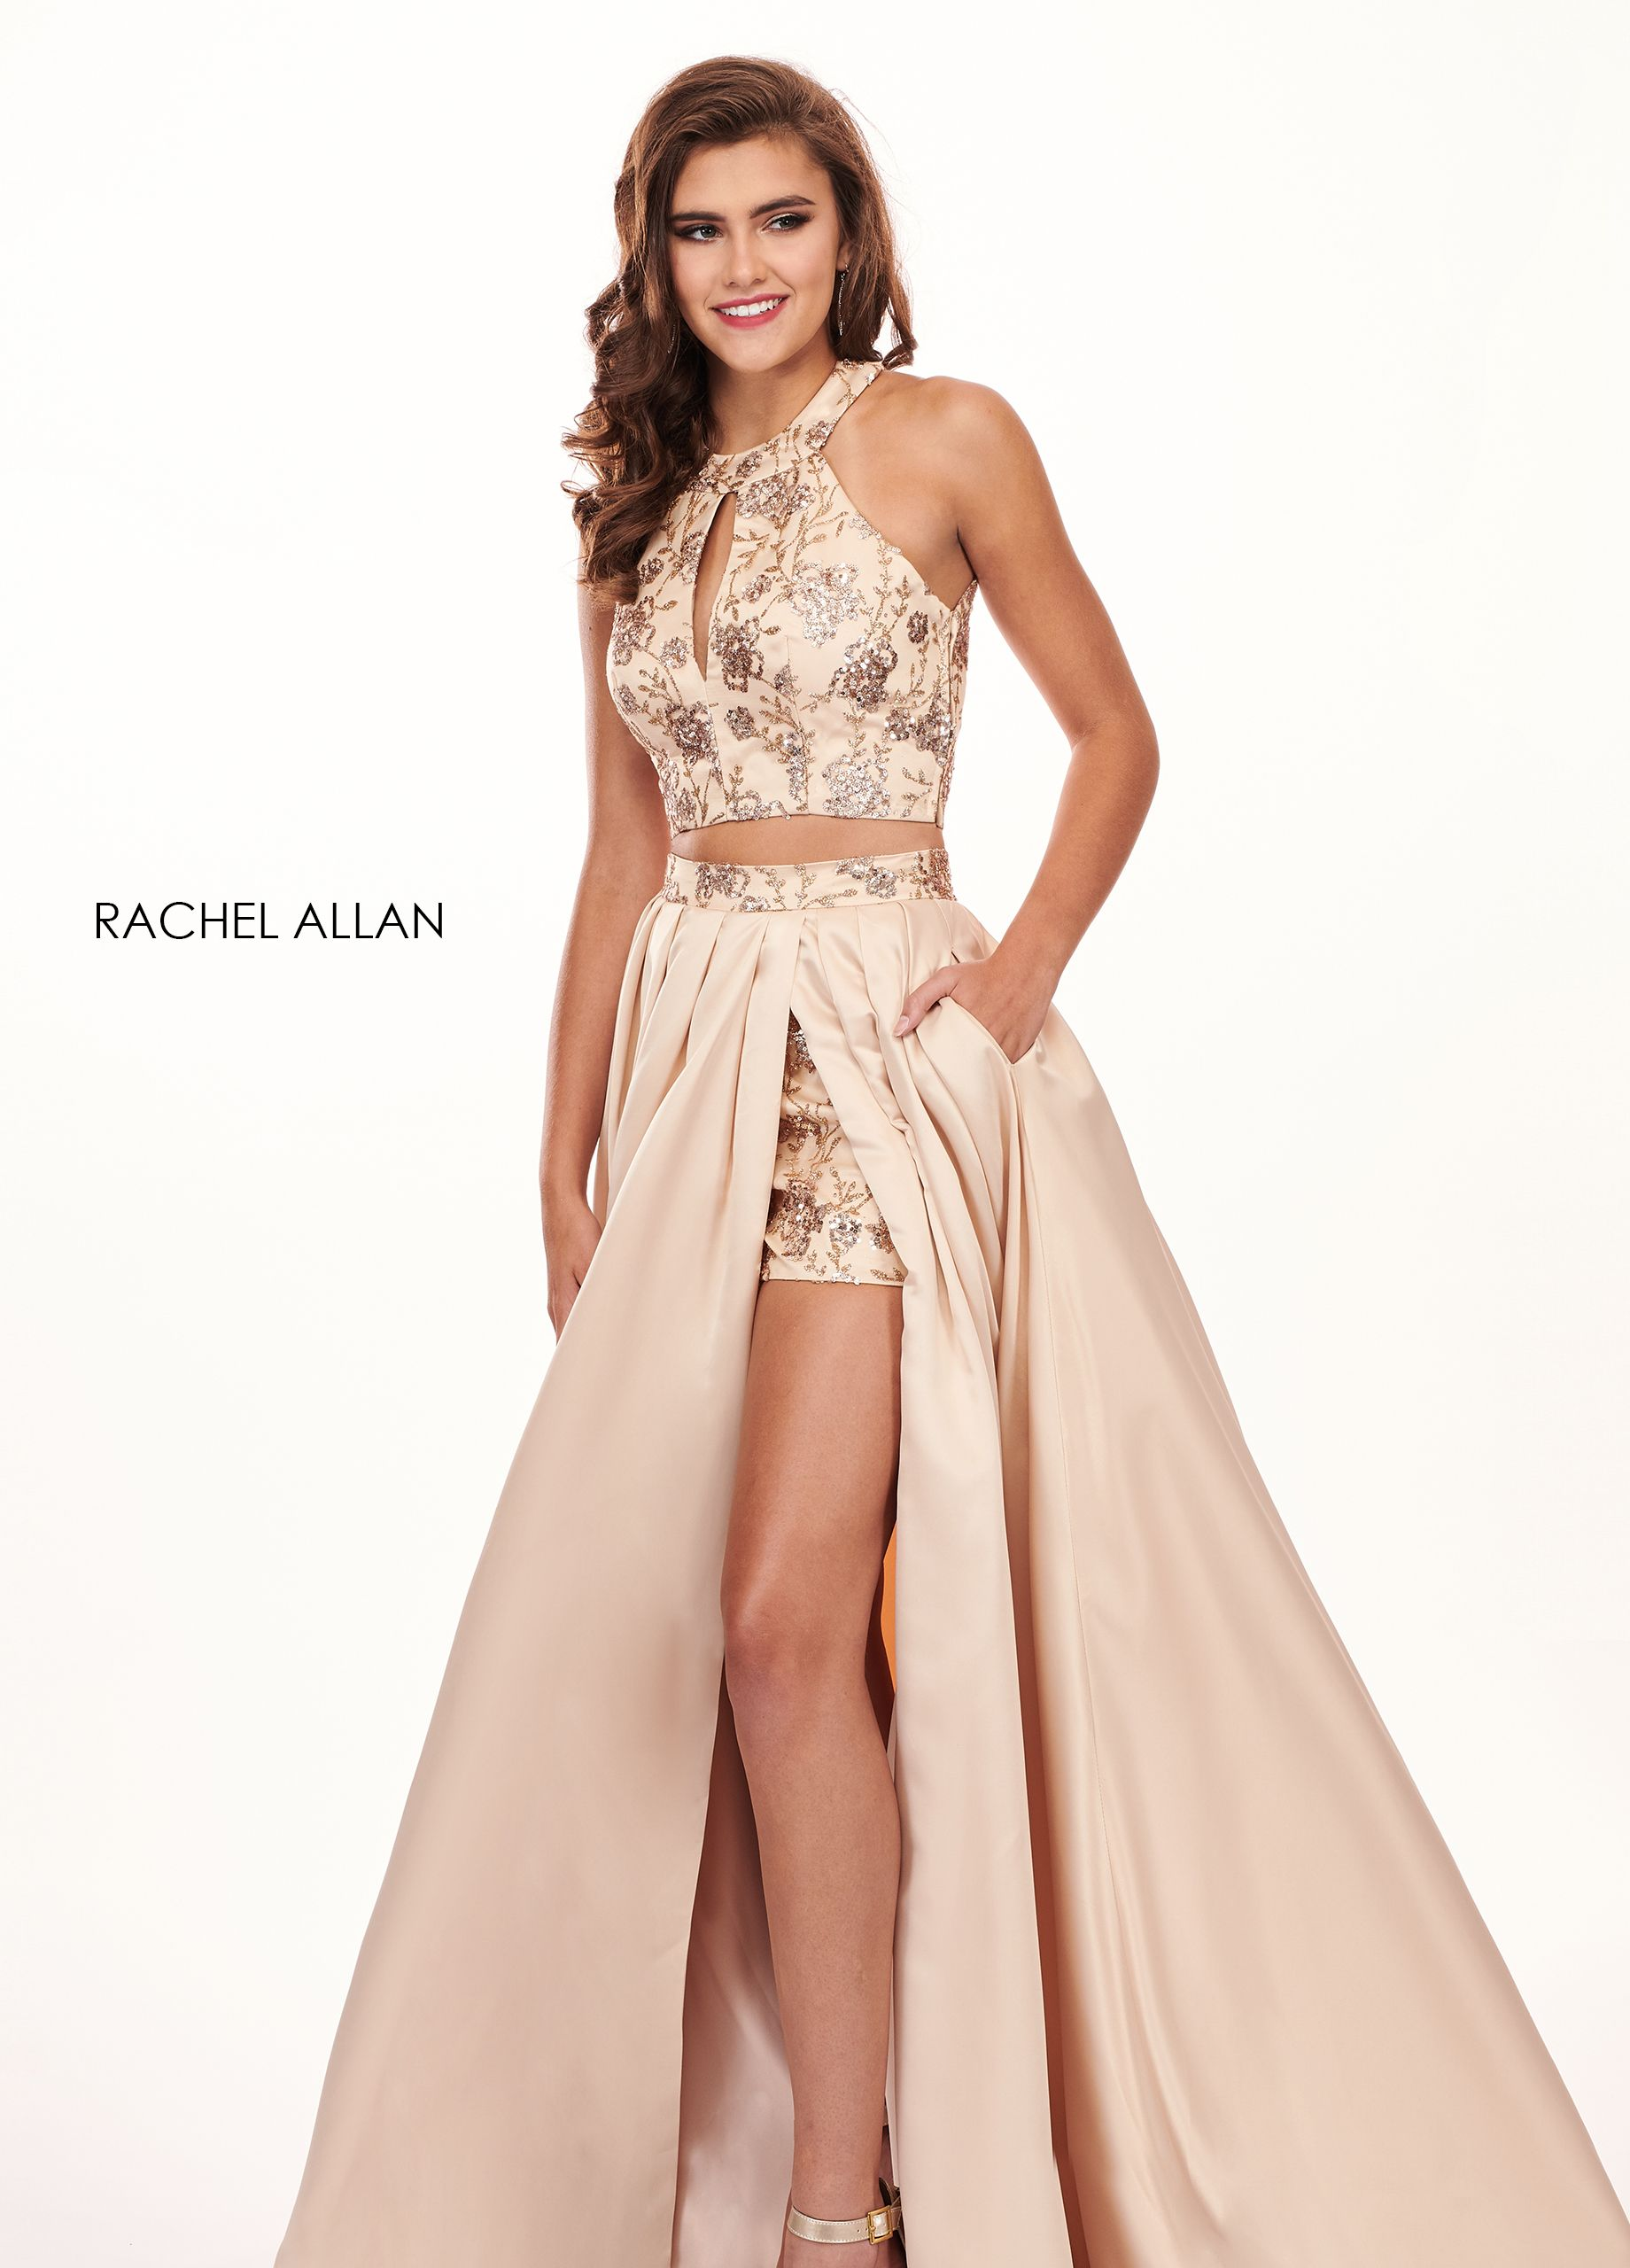 83aec827f7a1 High Neckline Shorts W/ Overlay Prom Dresses in Gold Color   Evening ...